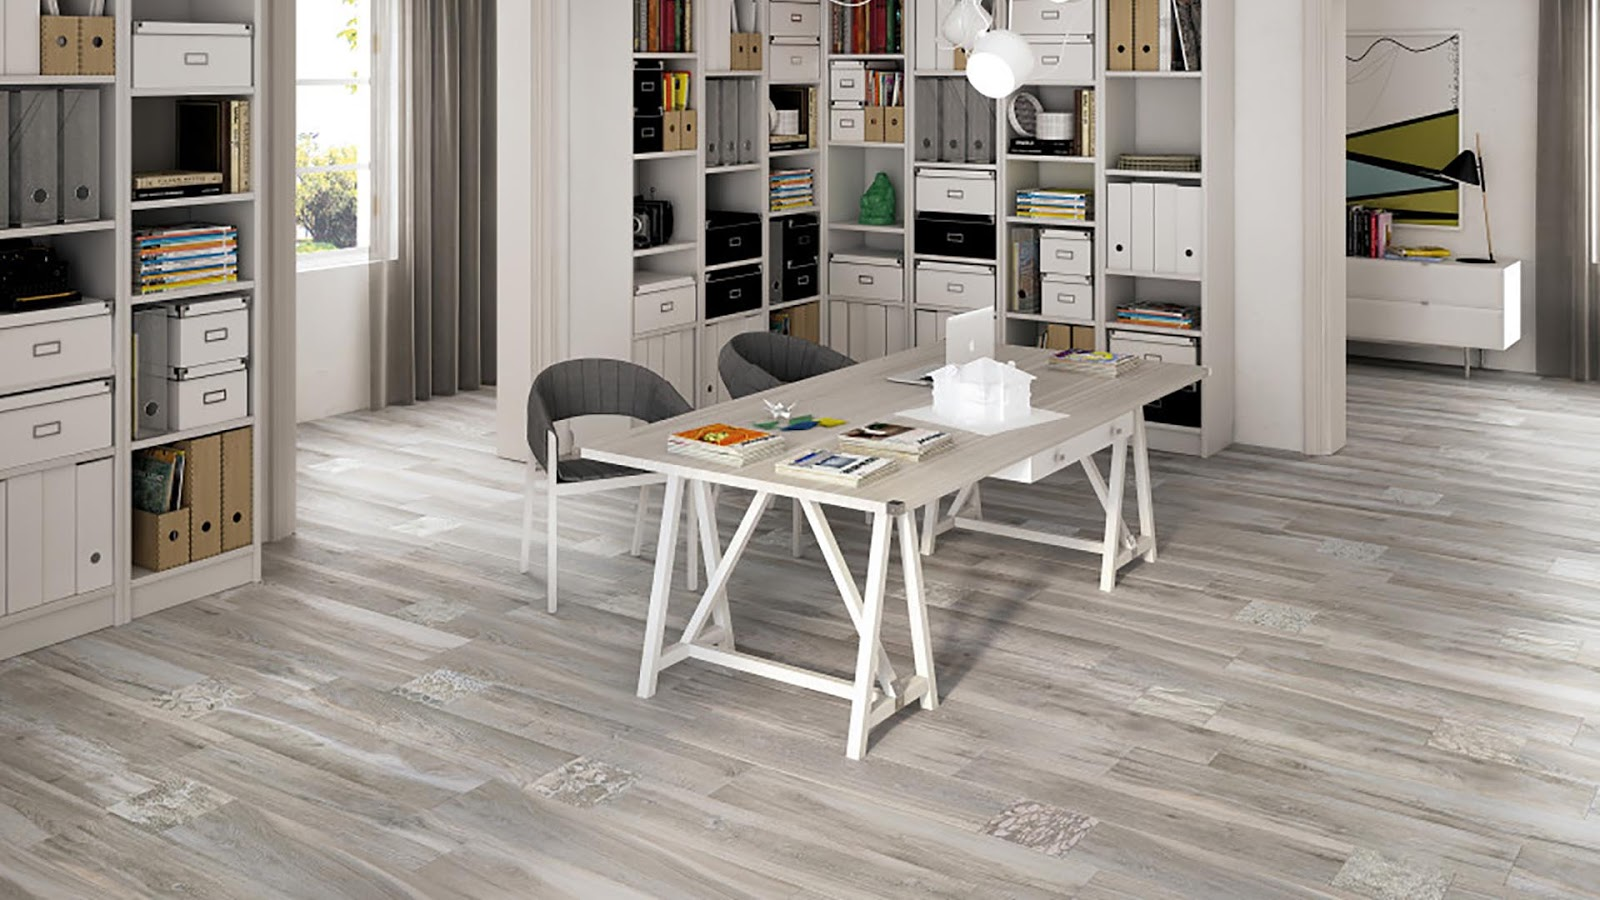 Wood Finish Floor Tiles Of Fincibec Group Floor Amp Wall